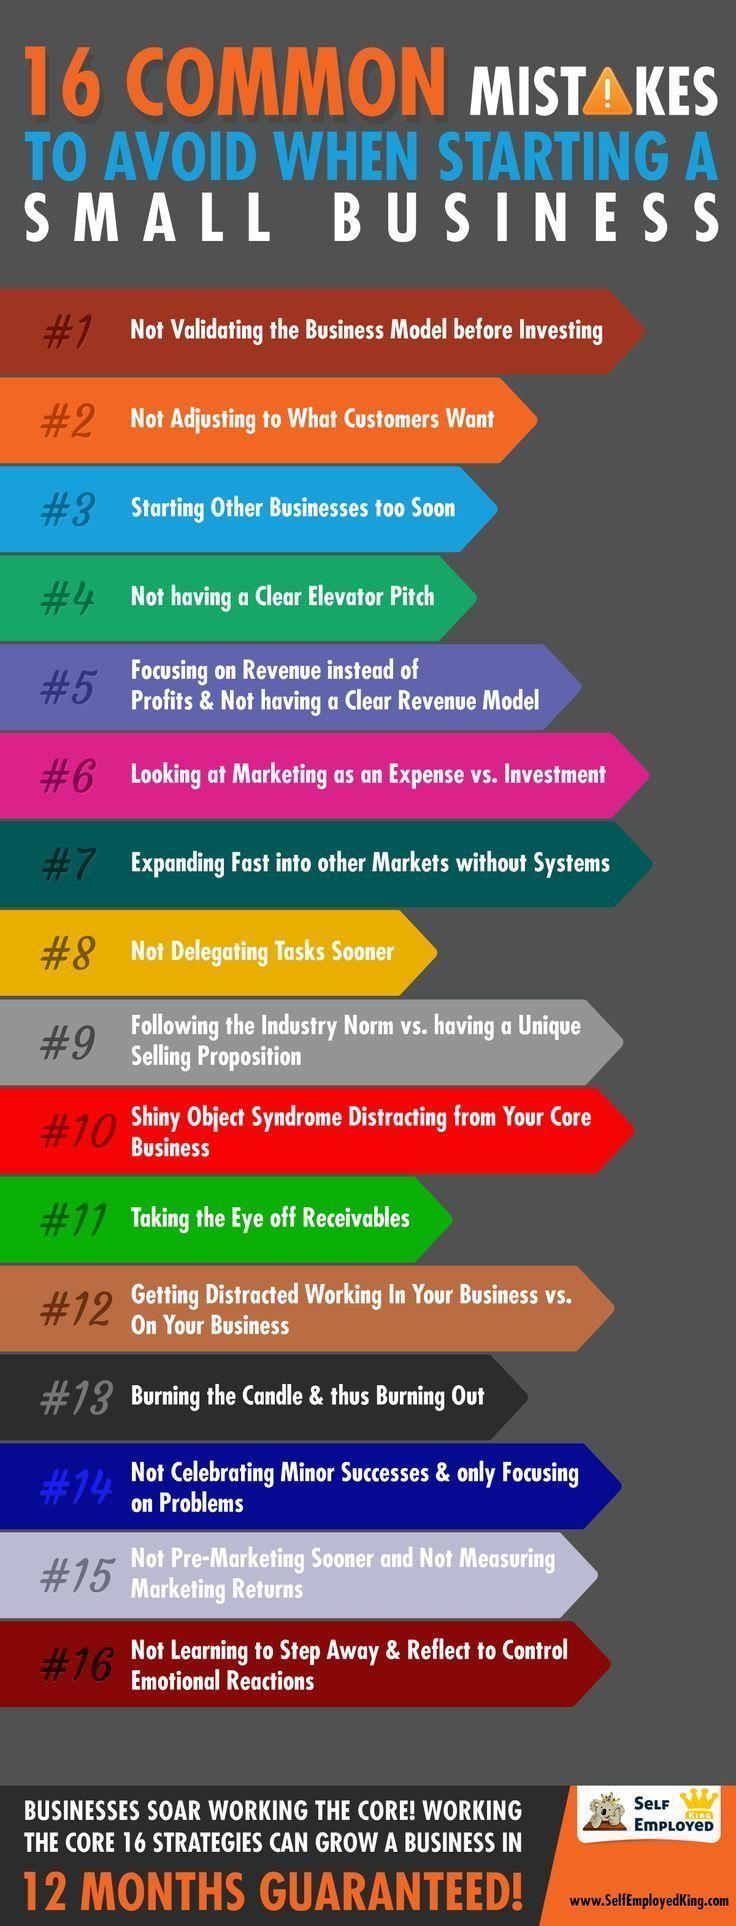 16 Common Mistakes to Avoid When Starting a Small Business from a Survey of over 100 Entrepreneurs ✮ www.pinterest.com/WhoLoves/helping-small-business  ✮smallbusiness #tips business ideas #smallbusiness small business ideas wahm ideas